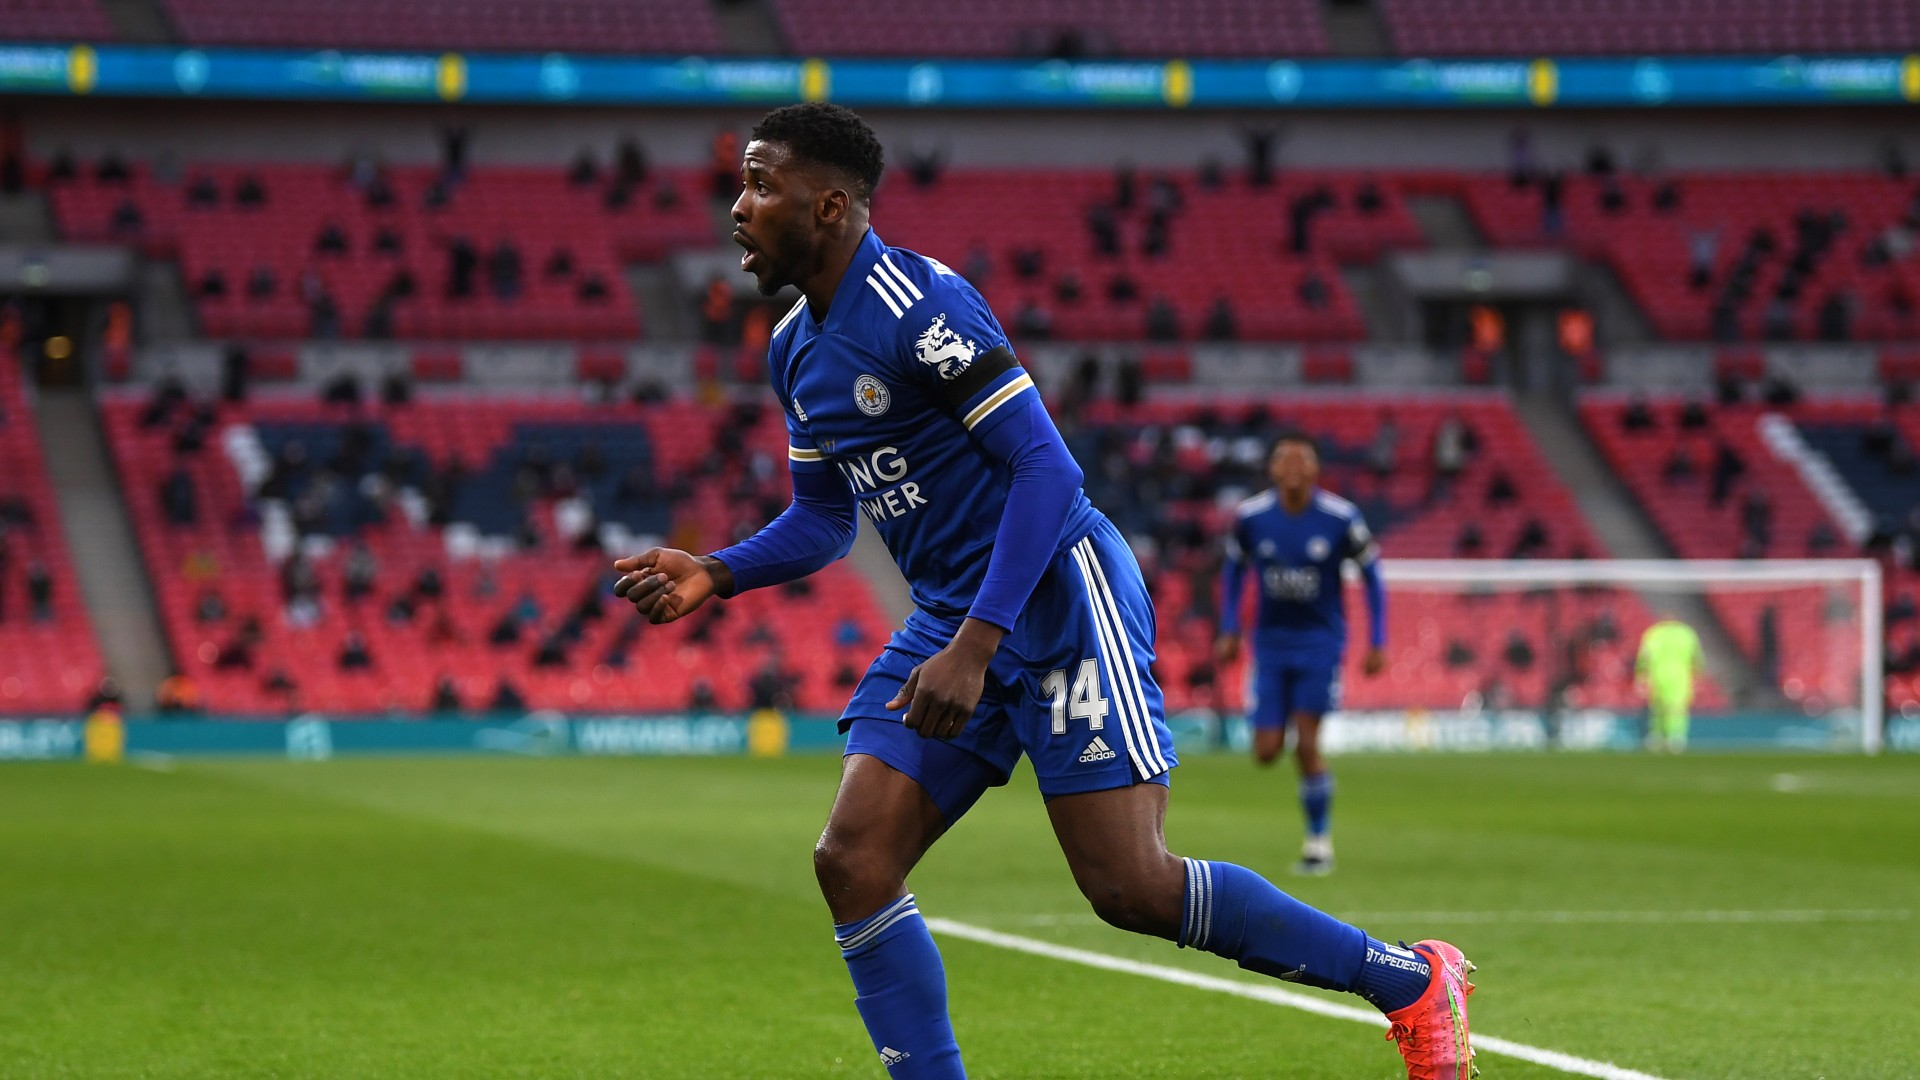 Leicester City 1-0 Southampton: Iheanacho strikes to end 52-year FA Cup final wait for Foxes